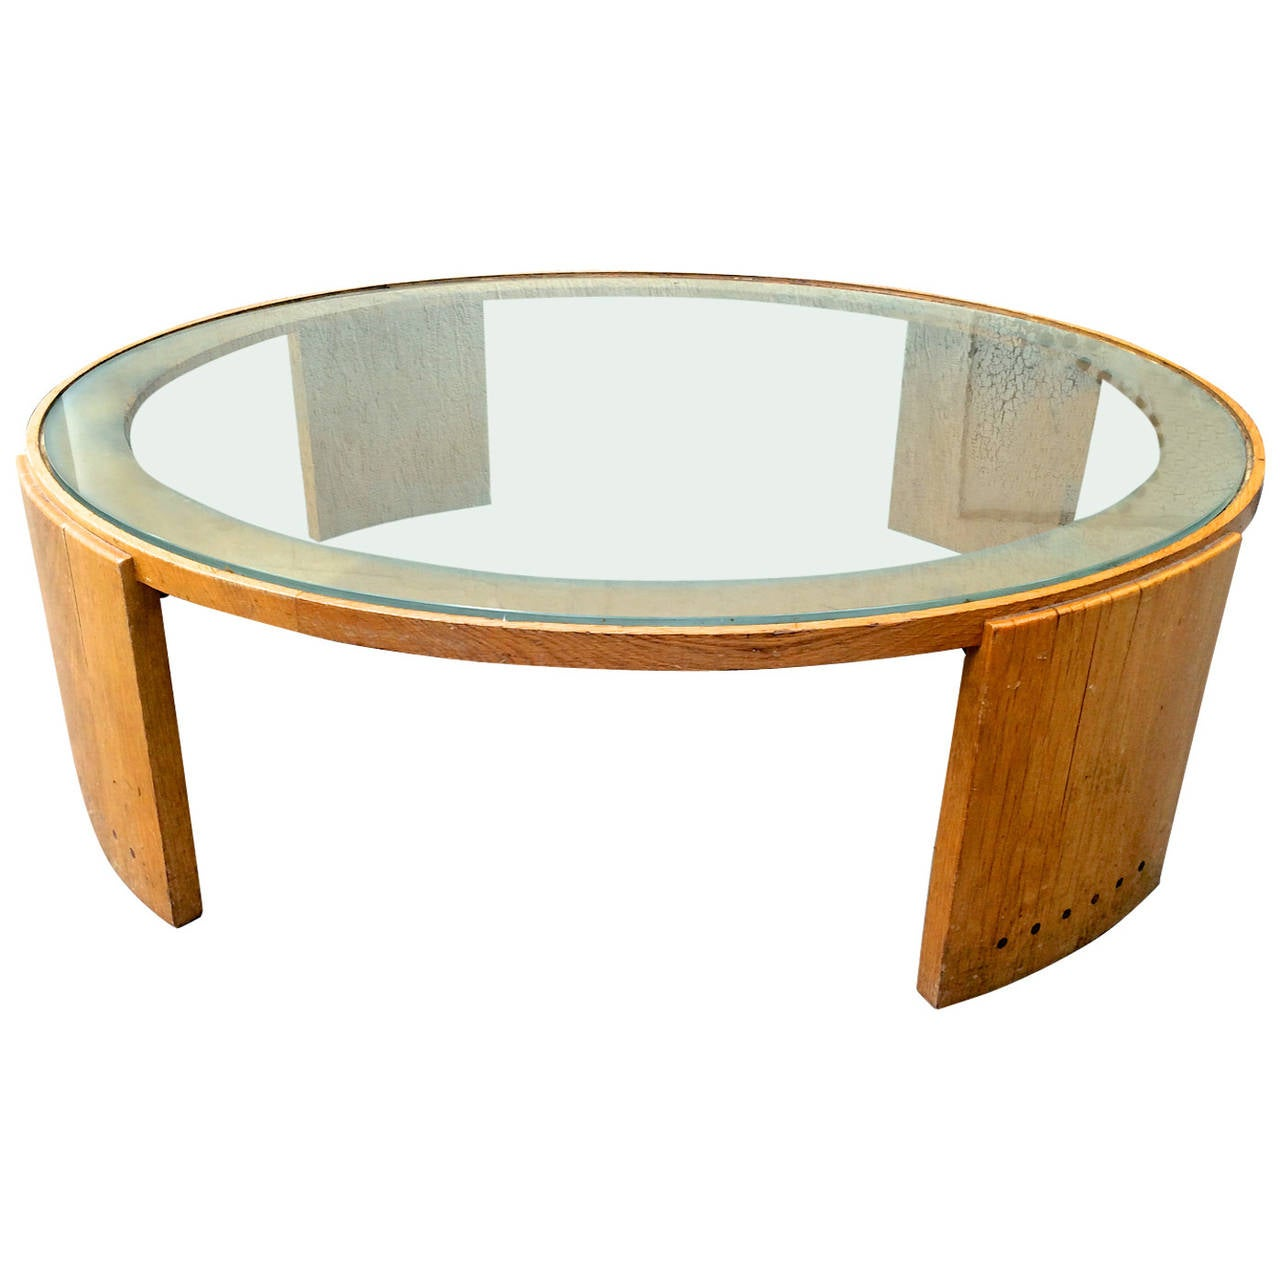 Large Round Glass Top Coffee Table Jacques Adnet Very Large Round Coffee Table In Oak And